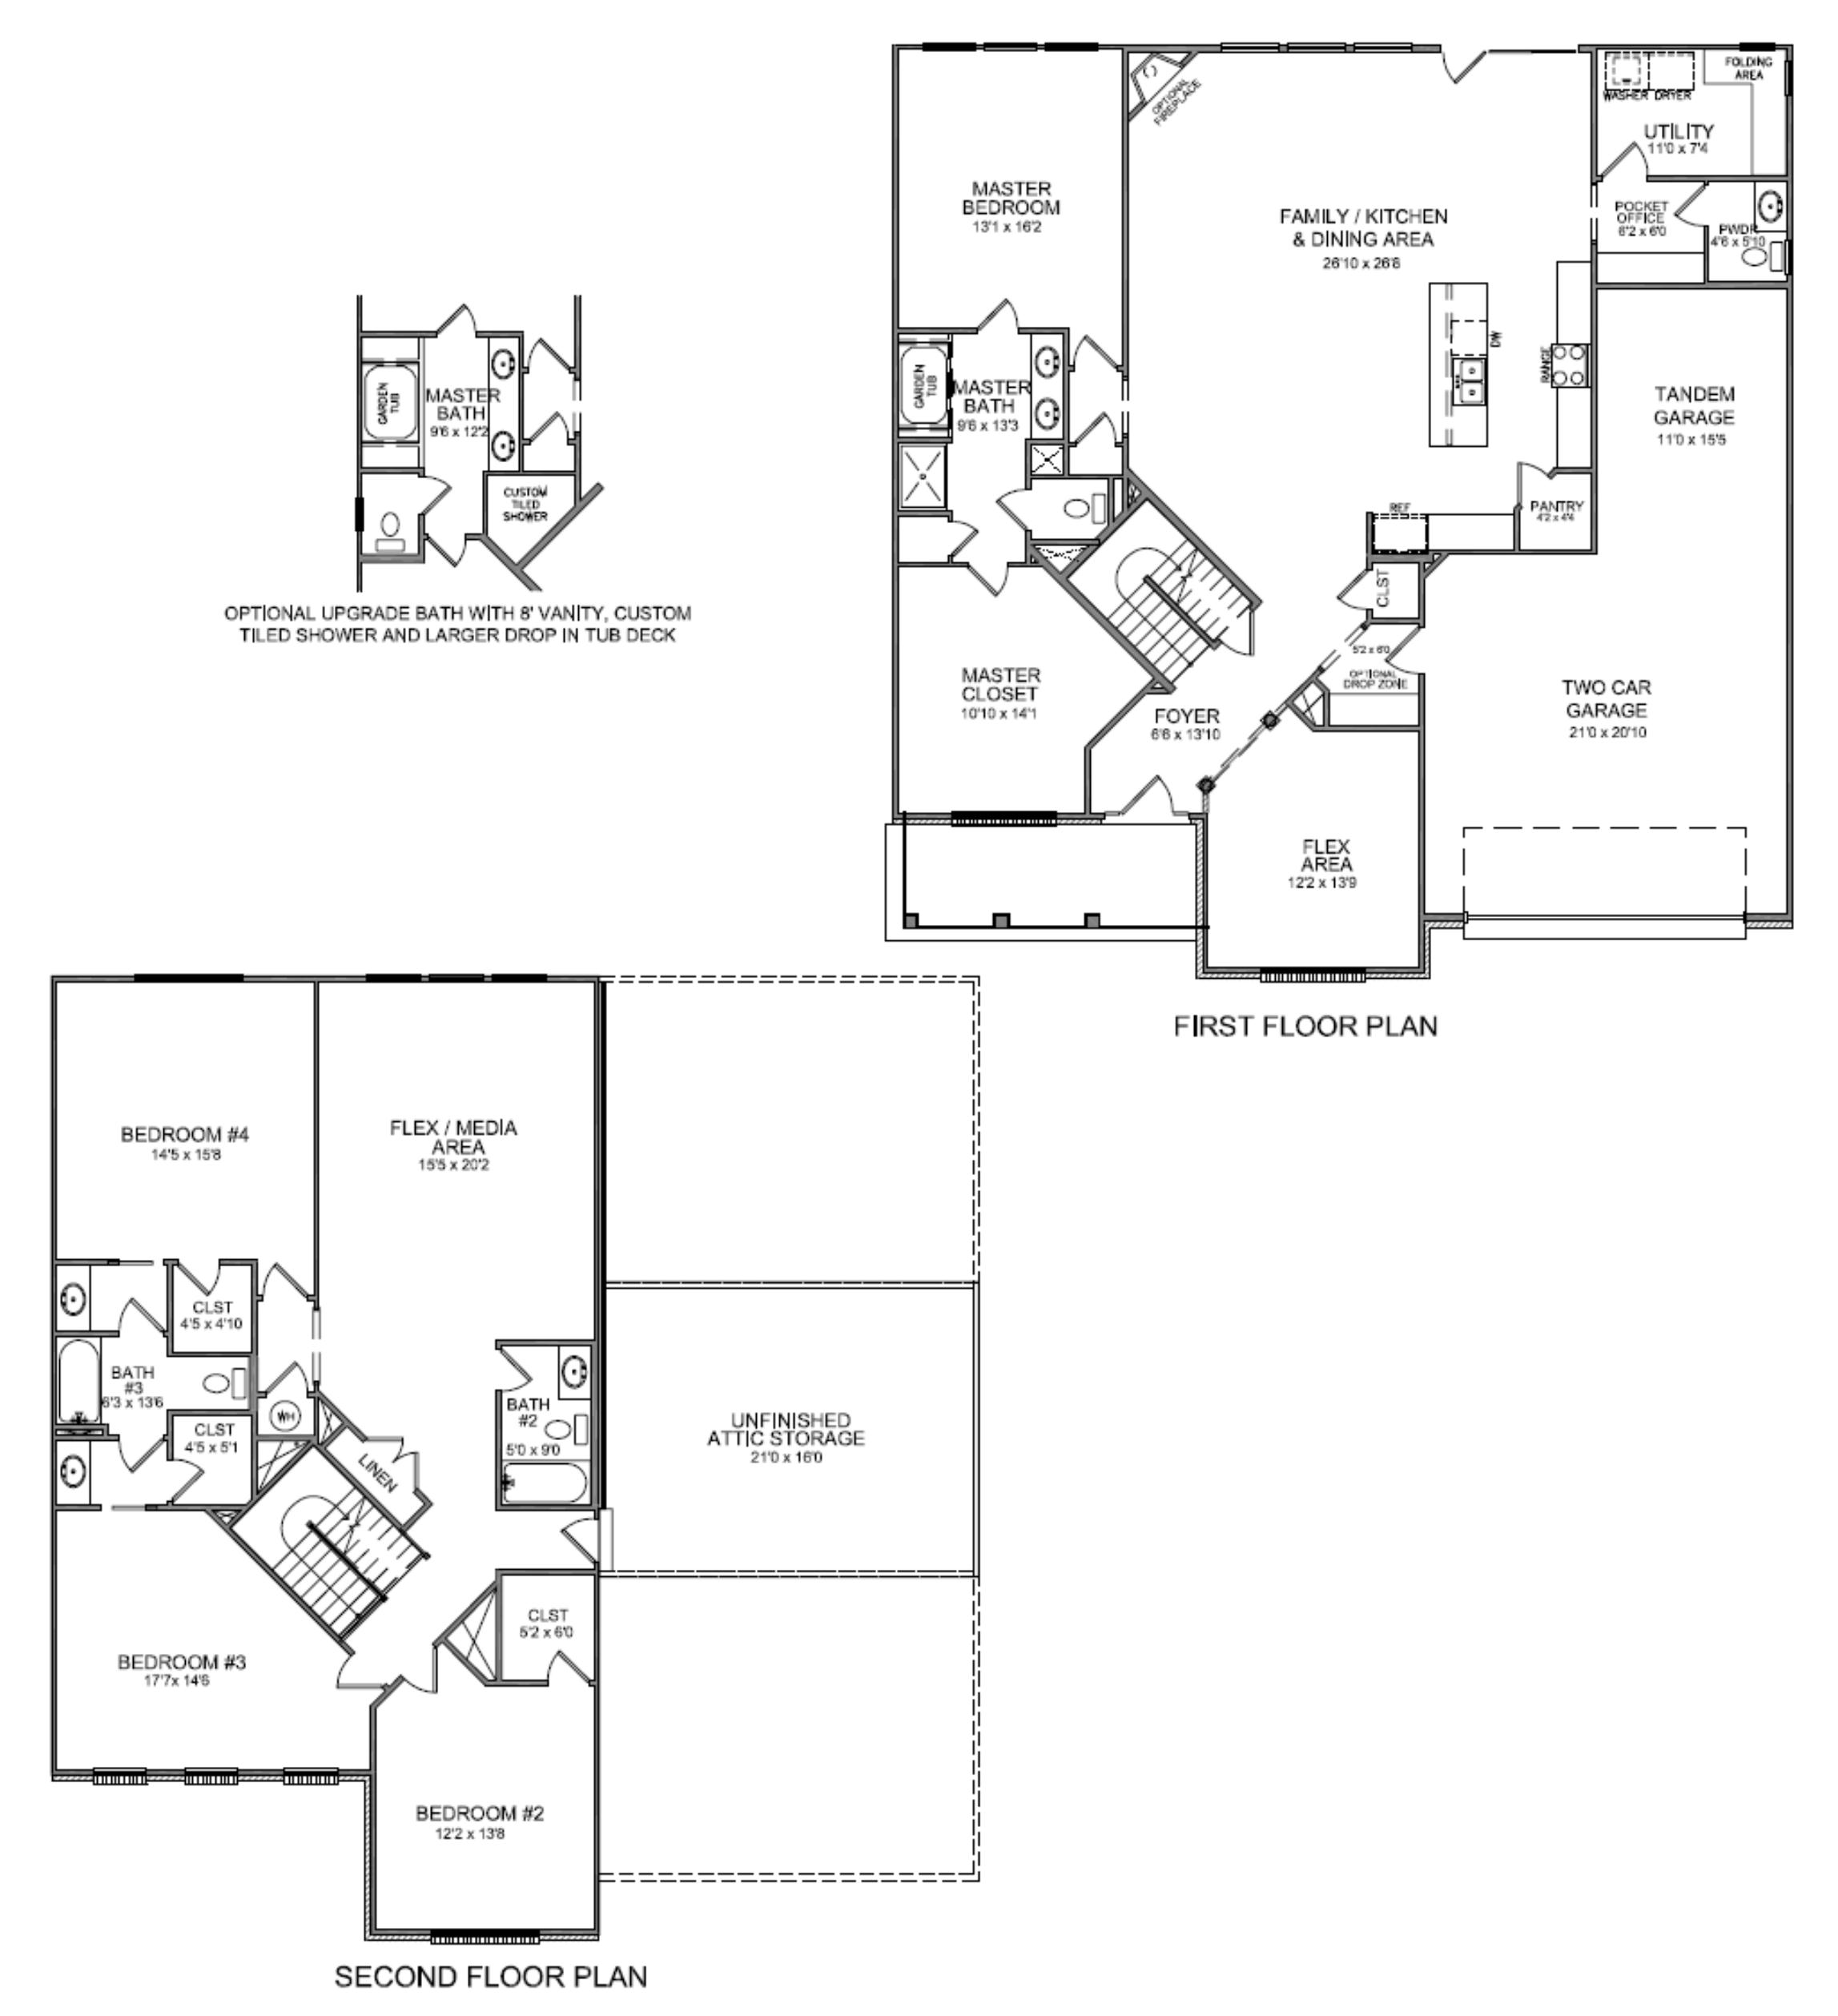 House Plan Drawing Board Plan 1400 further Narrow Floor Plans Two Bedroom Suite in addition Small Craftsman Conceptual Design 1371 as well 22239 Akin Doe in addition Small Studio Apartment Unit Floor Plans. on floor plans jack and jill bathroom